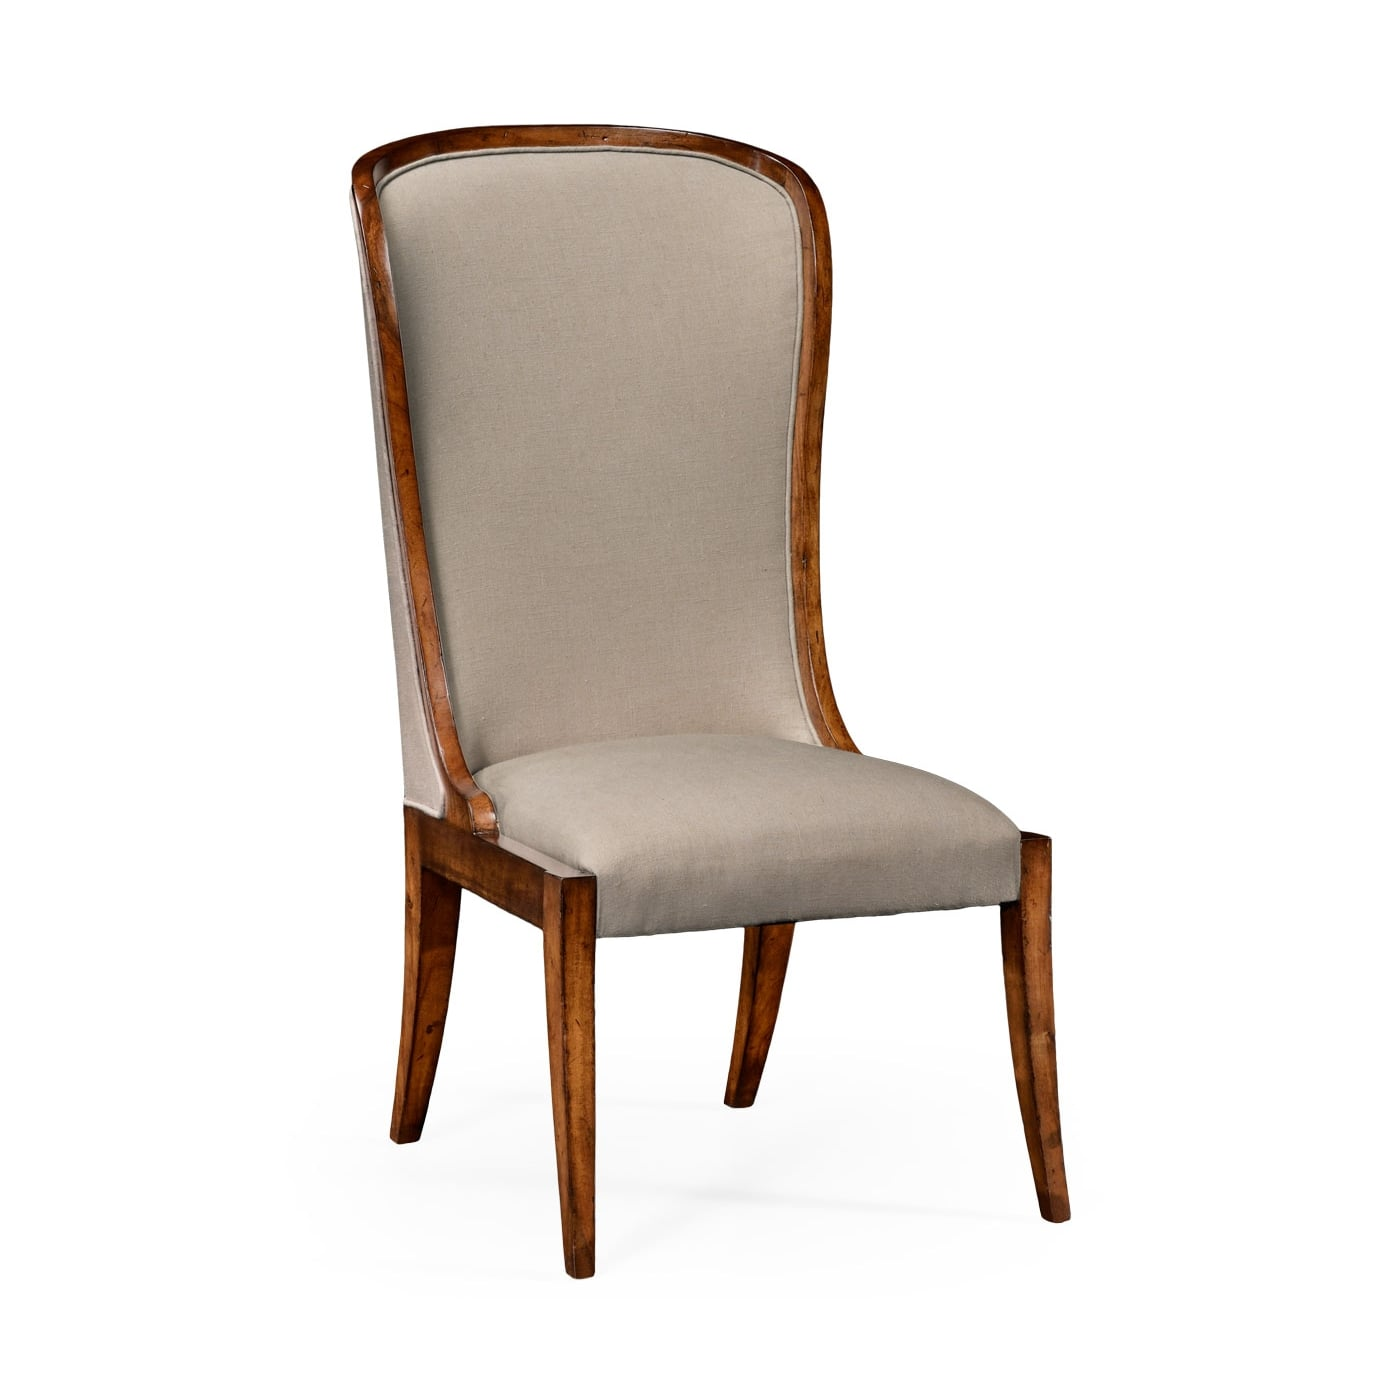 high back upholstered dining chairs. Jonathan Charles Furniture High Back Upholstered Dining Chair Chairs